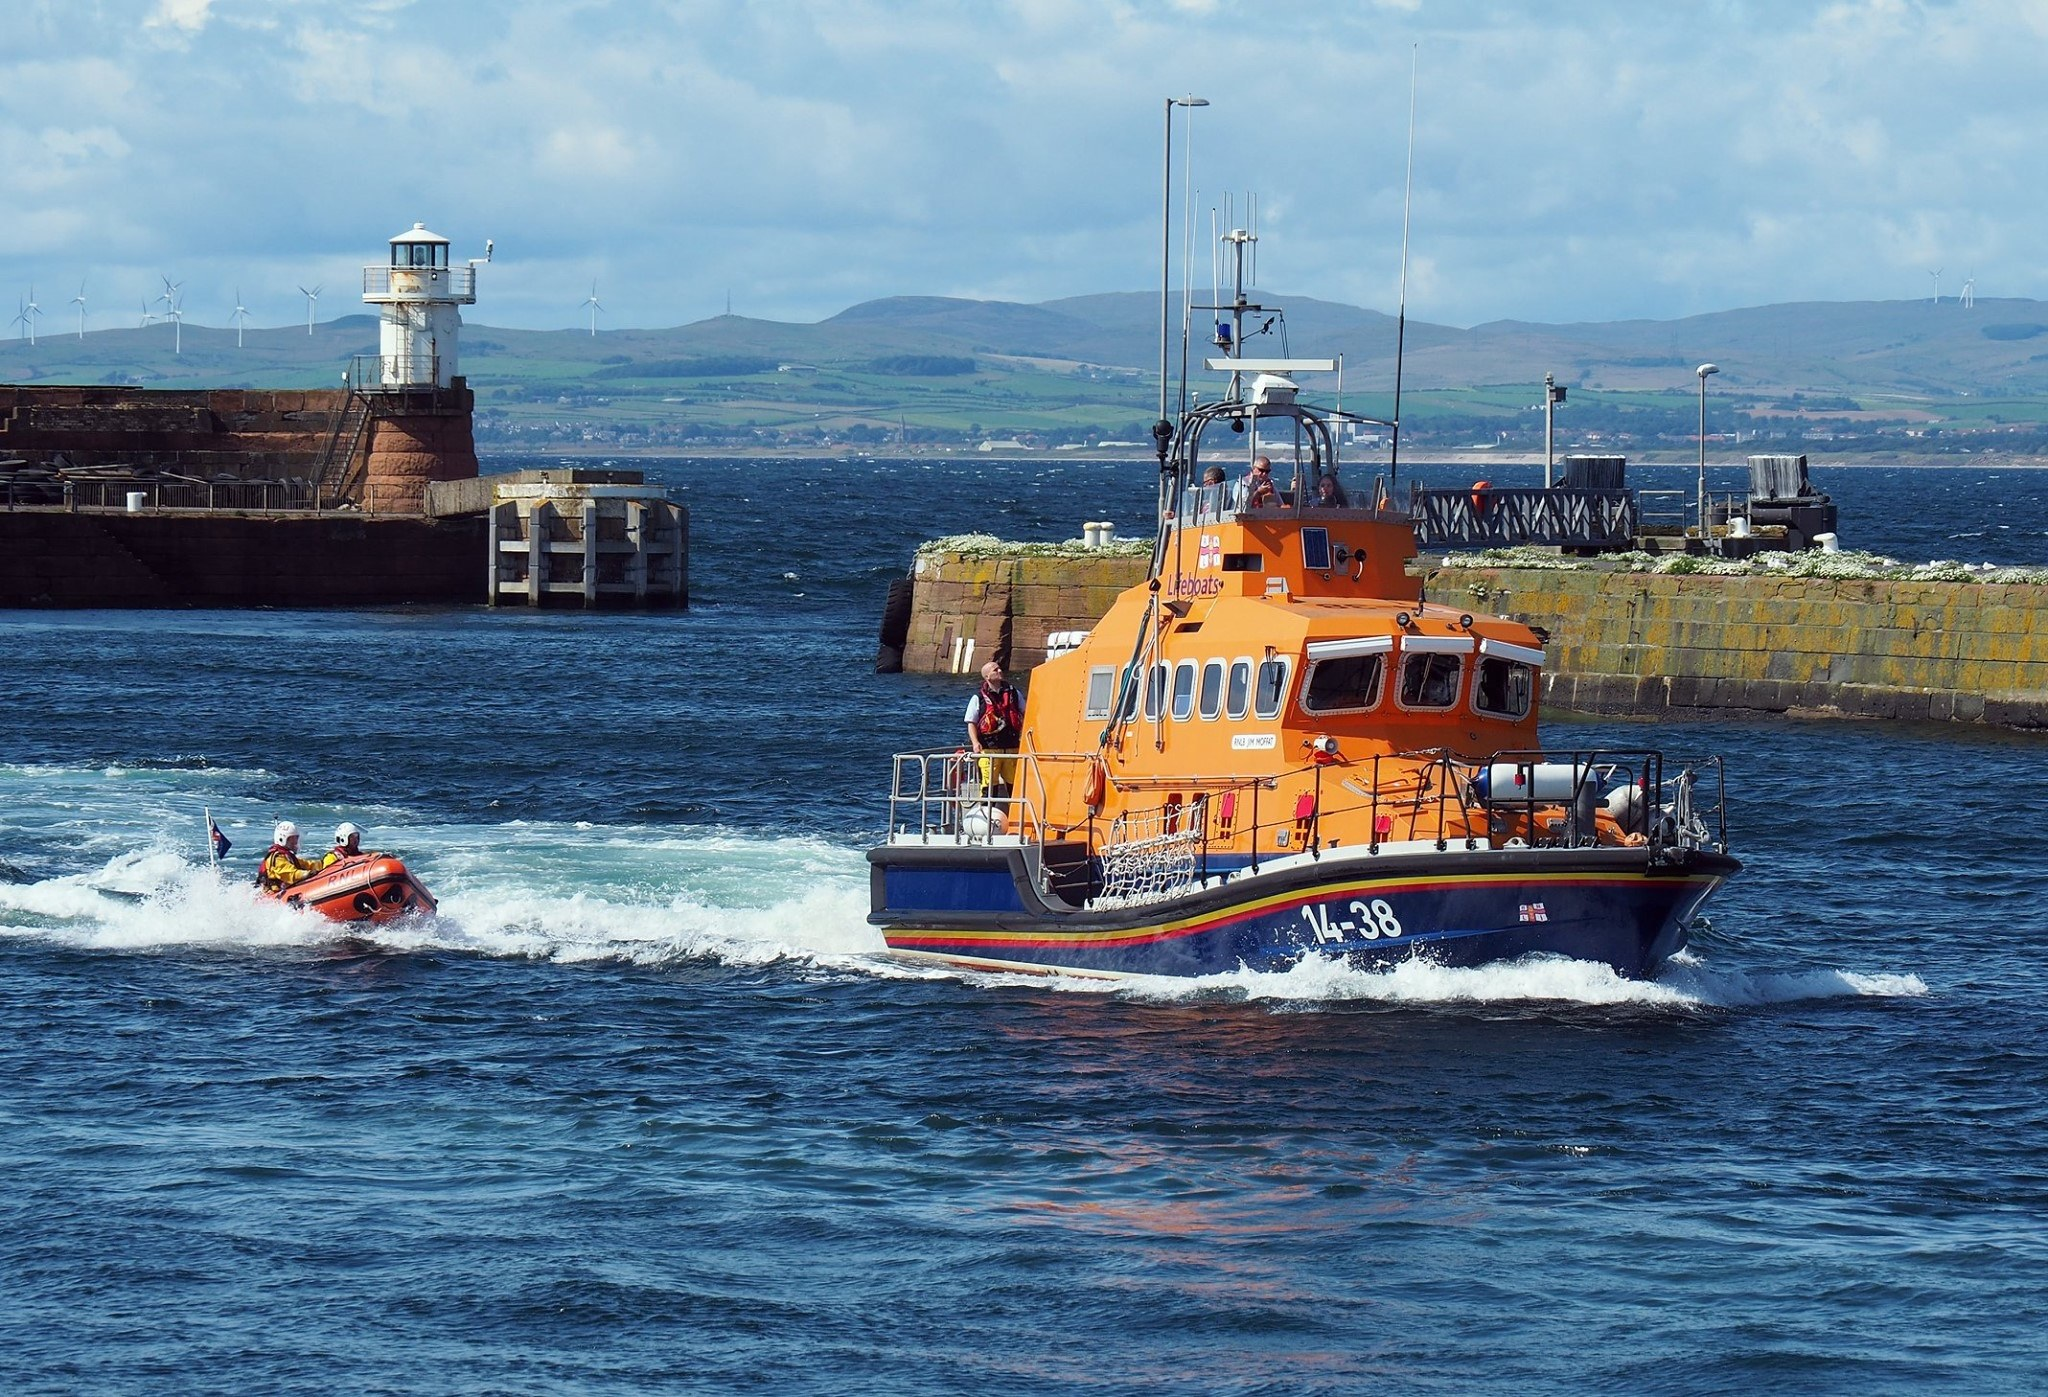 Both Troon RNLI lifeboats during the man overboard display